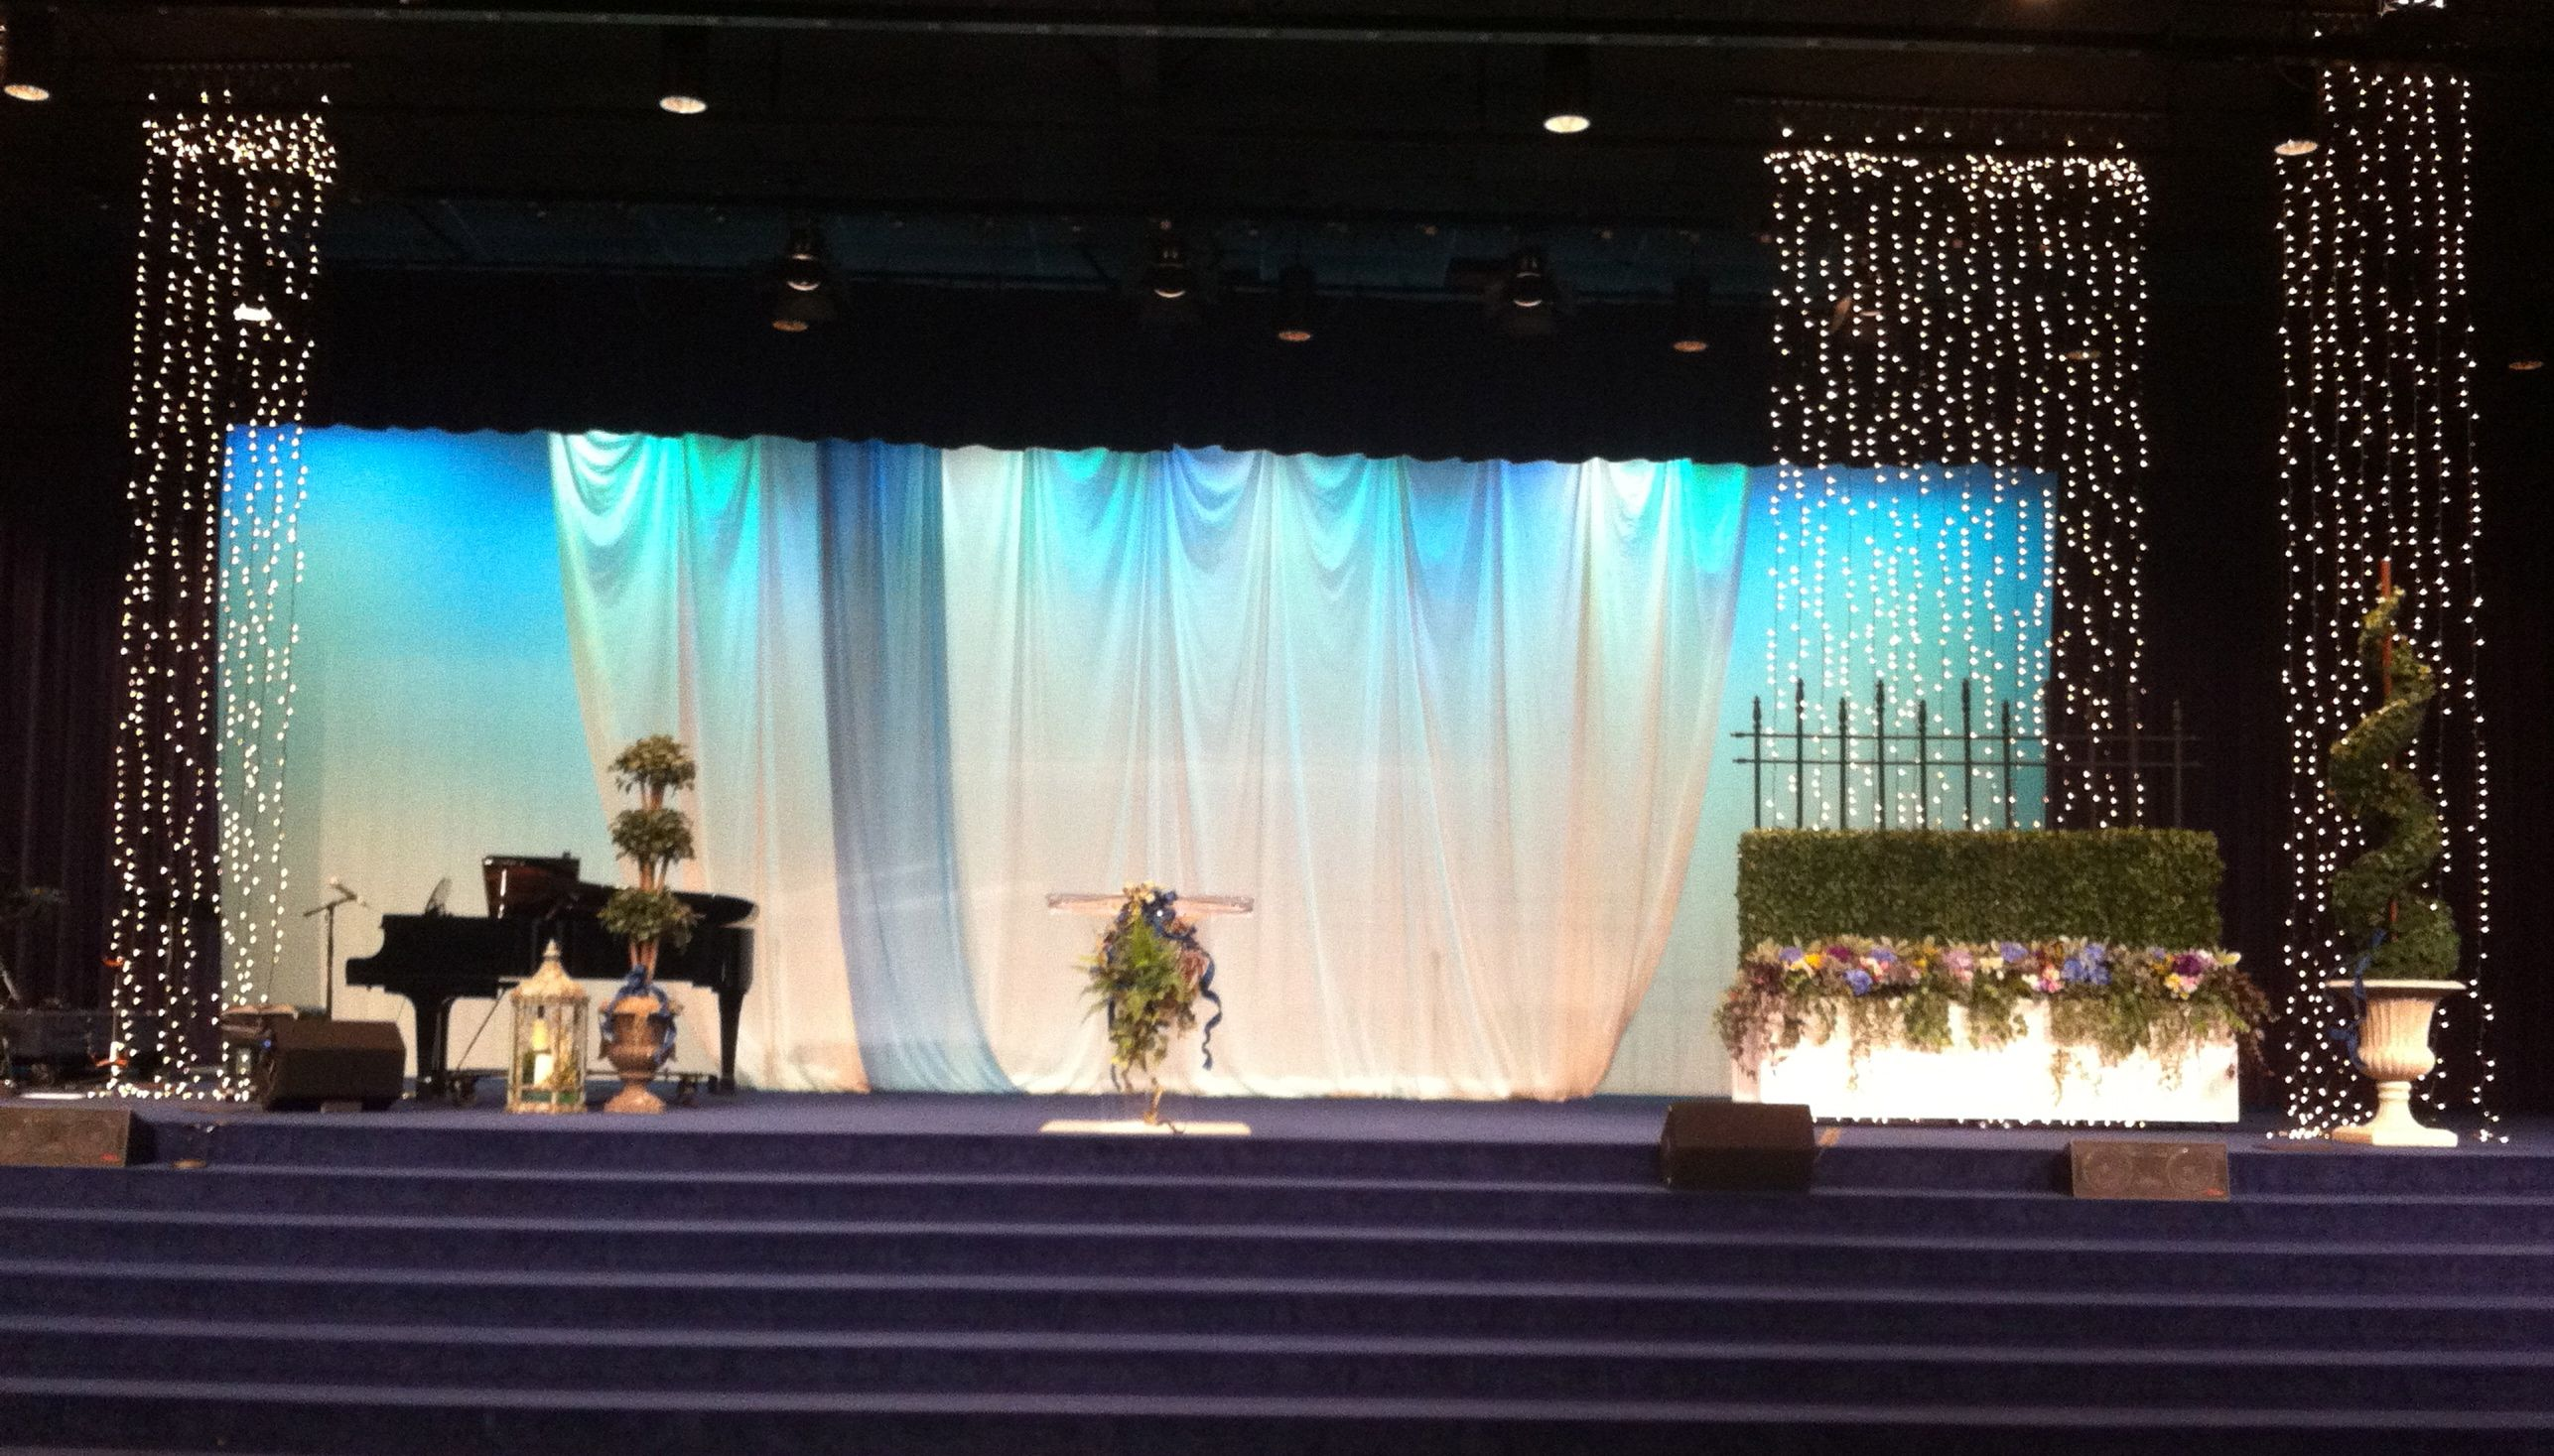 Cfc Church Stage Decorations Women S Conference Decor Early Spring 2017